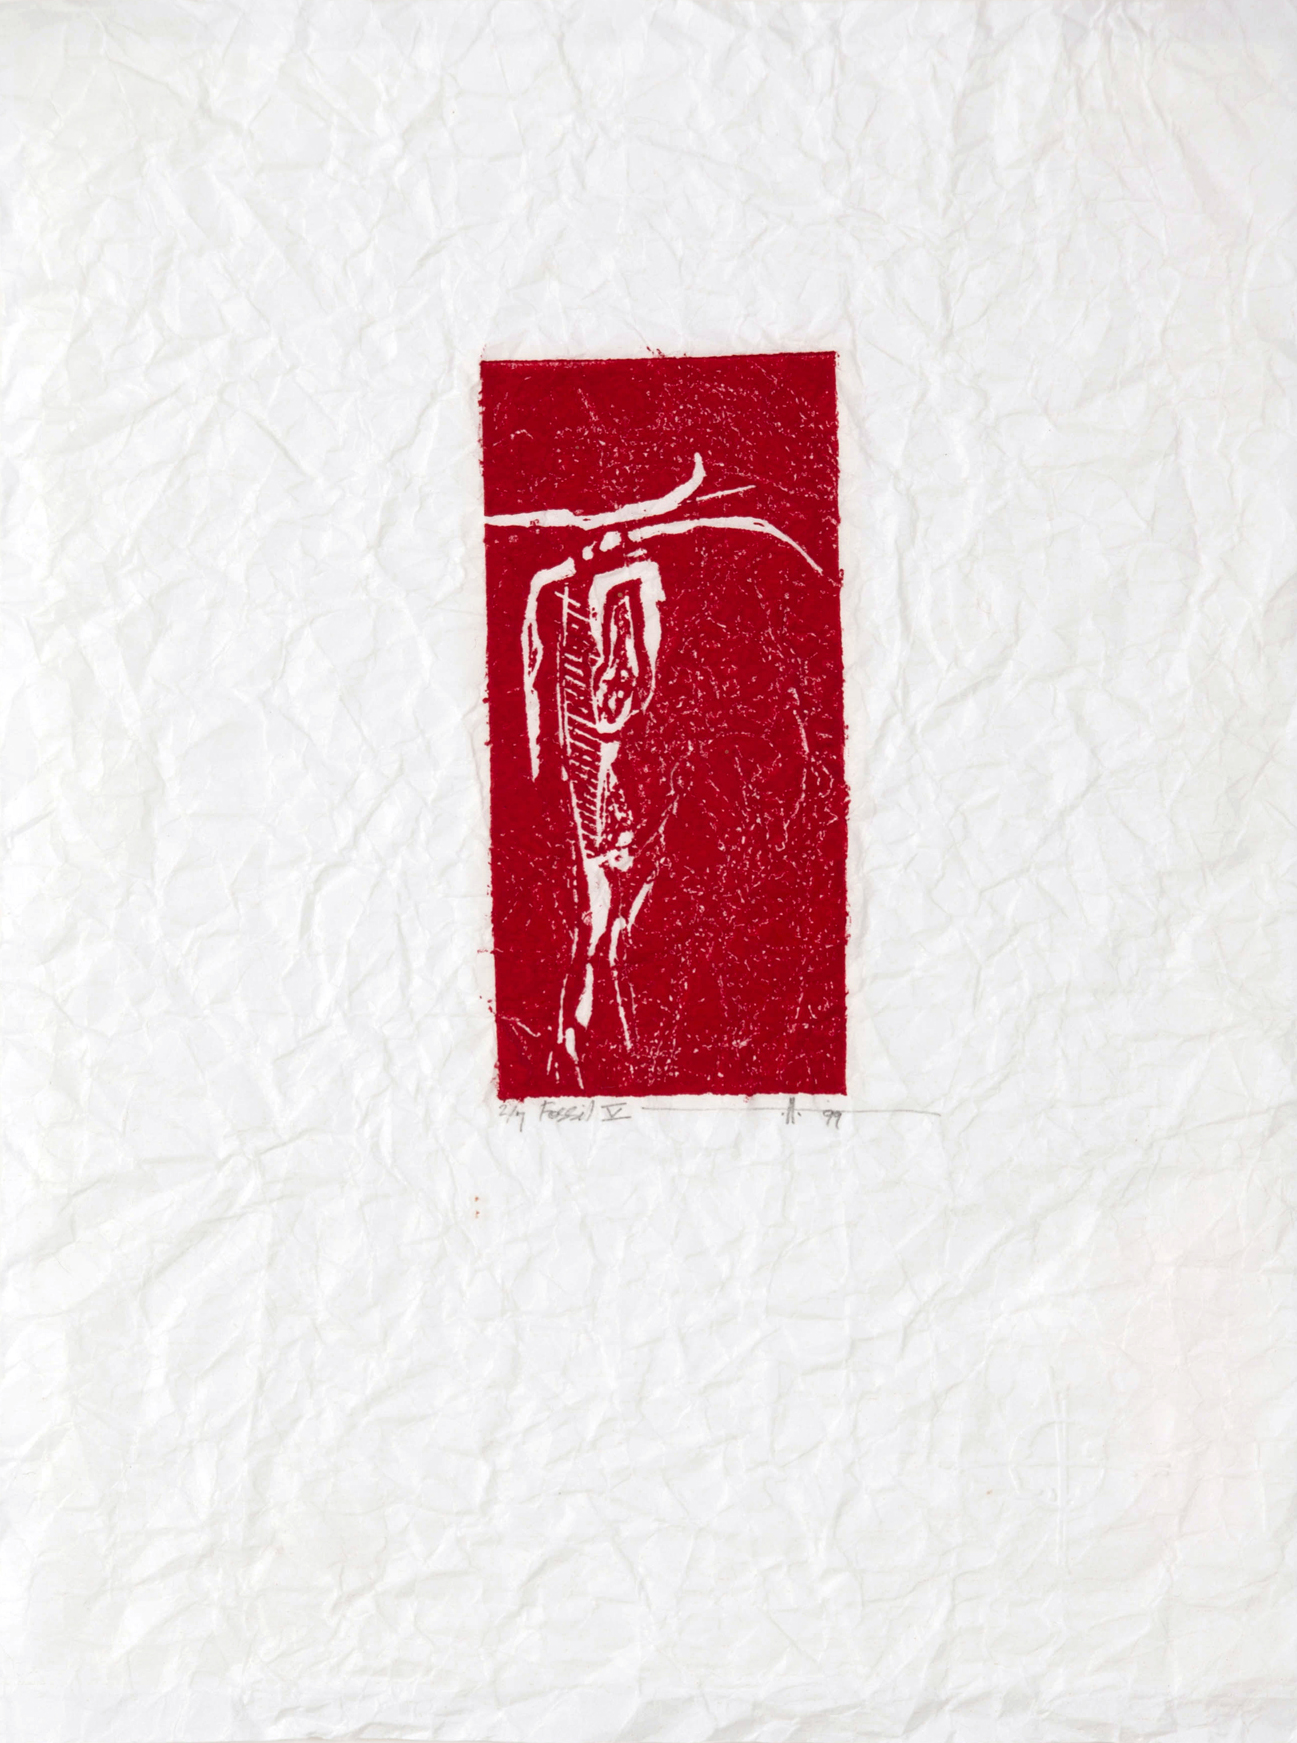 "Fossil 5,  BC  Linocut on Distressed Rice Paper 9"" x10""  2000 / Silence Exhibition 1/7, sold out"